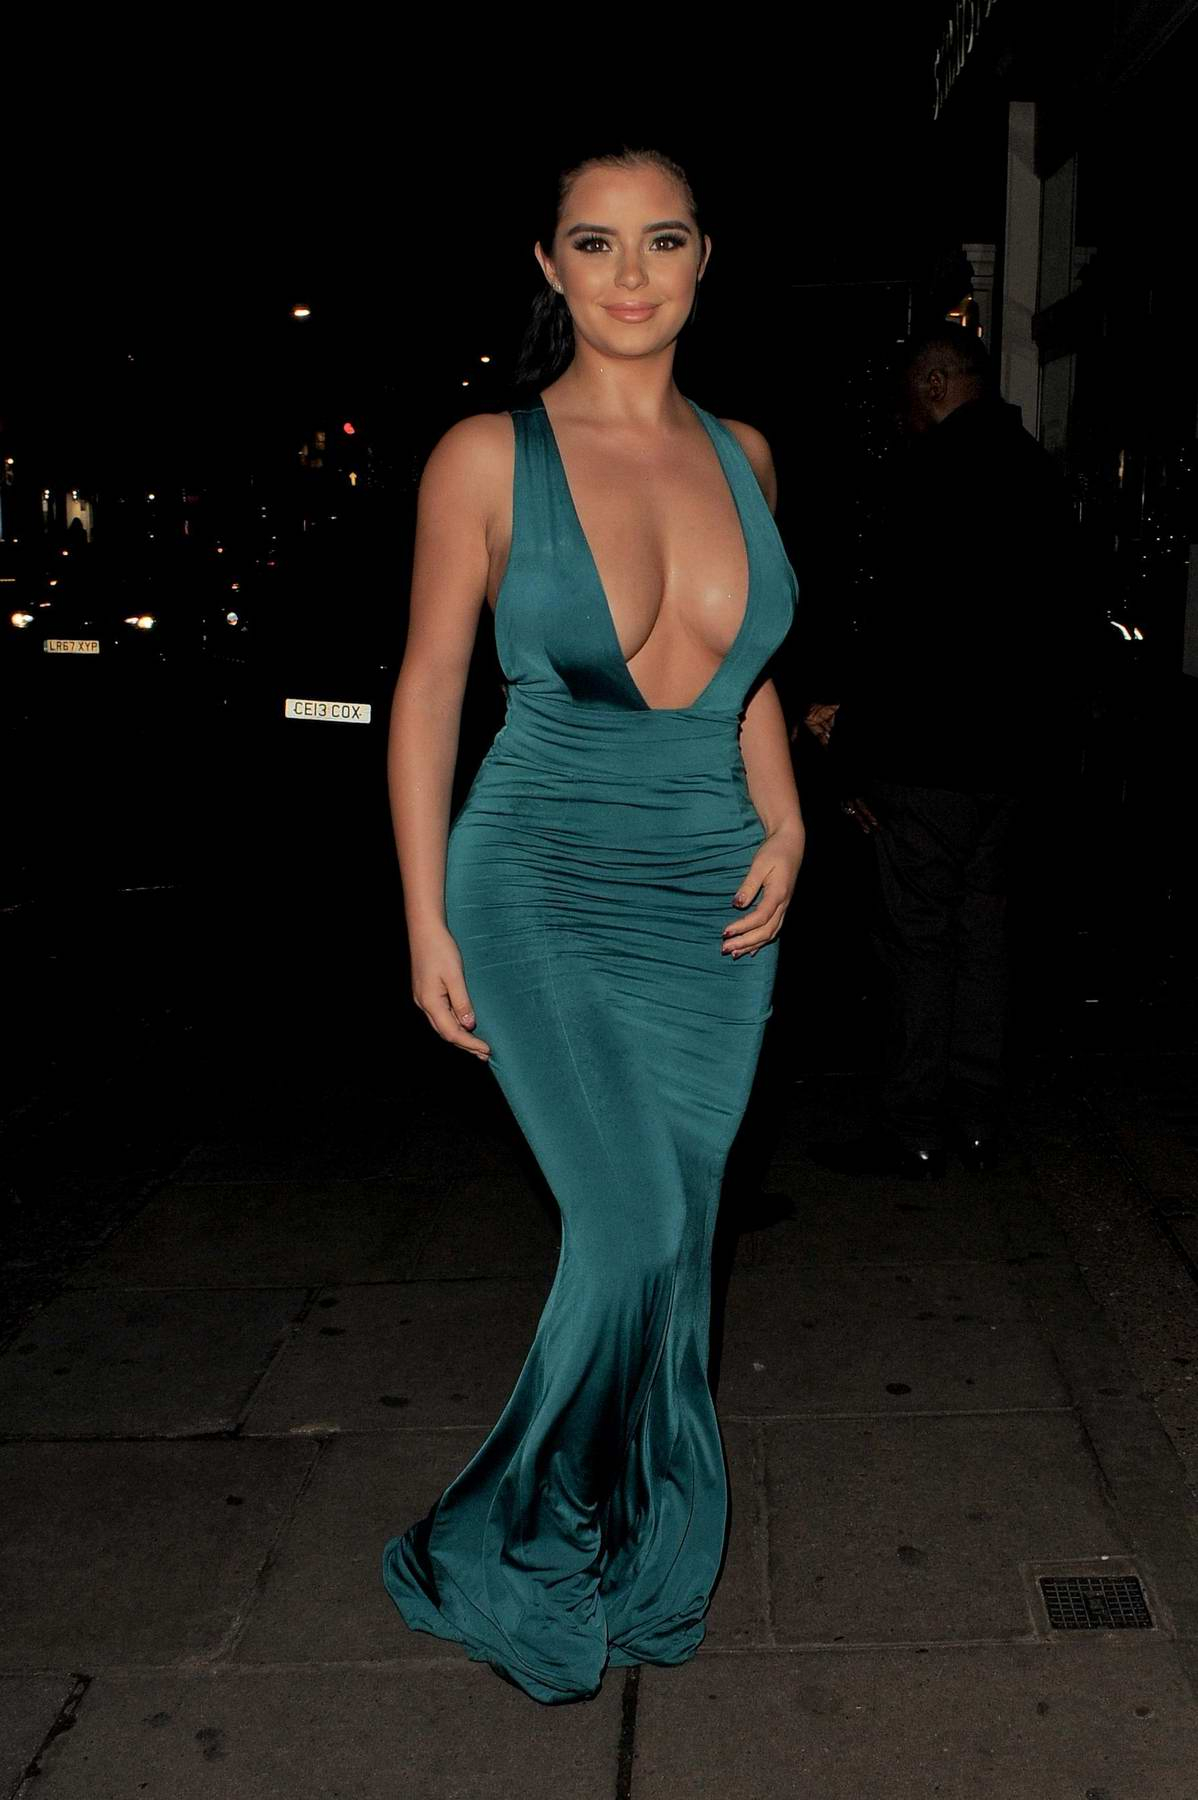 Demi Rose Mawby wearing a teal deep cut dress while on a night out in Mayfair, London